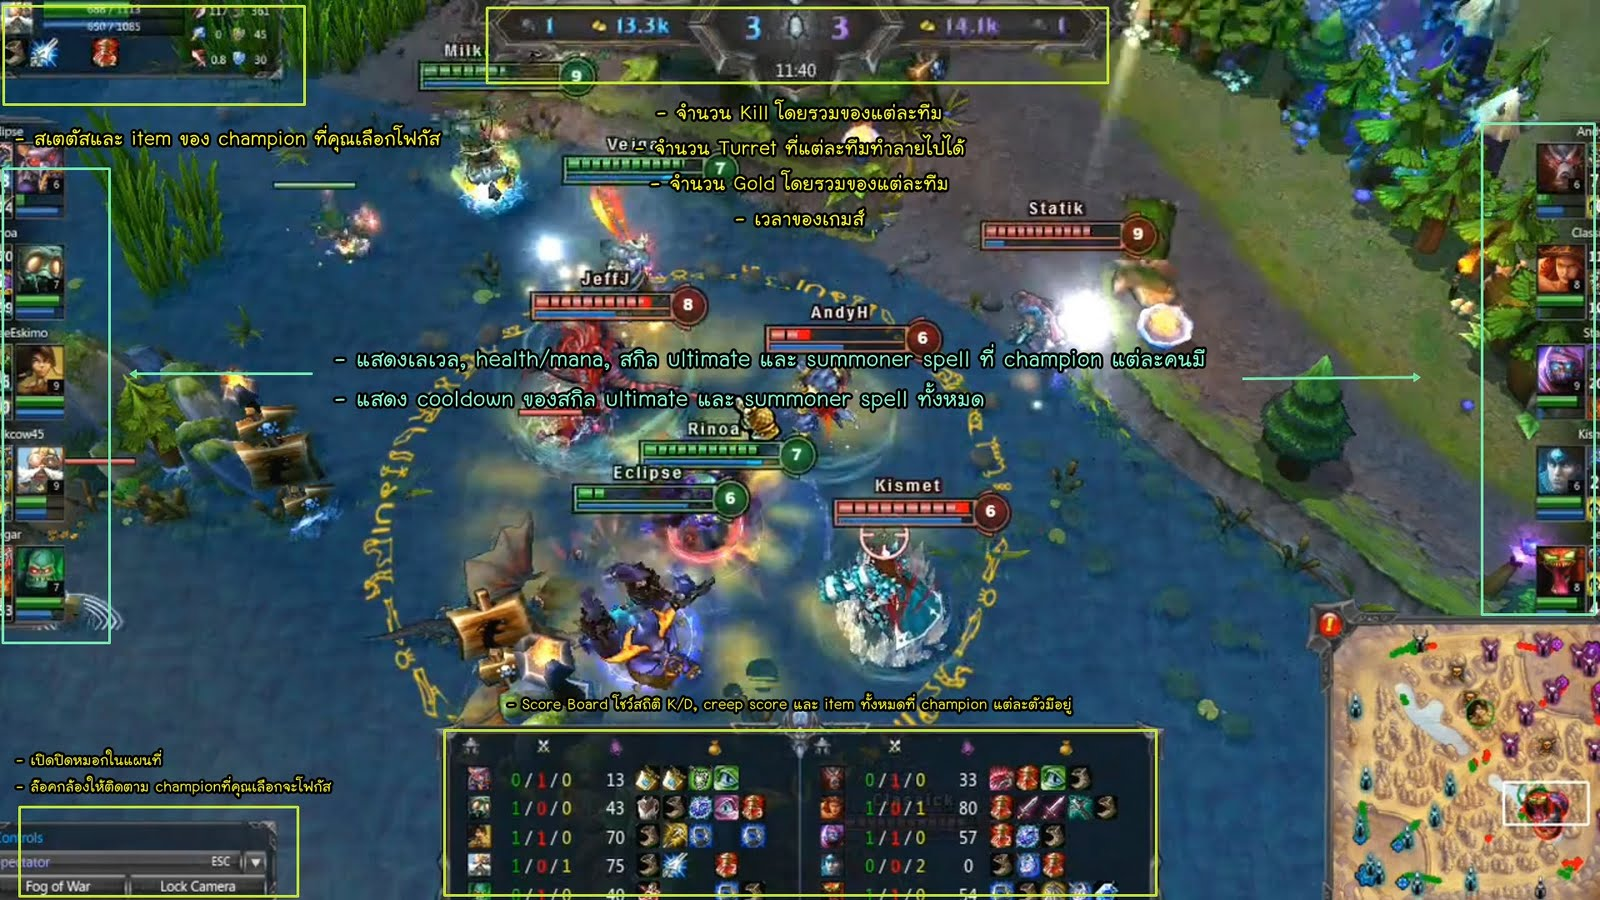 League of Legends Thai Blog (LoLthBlog): What's going on in